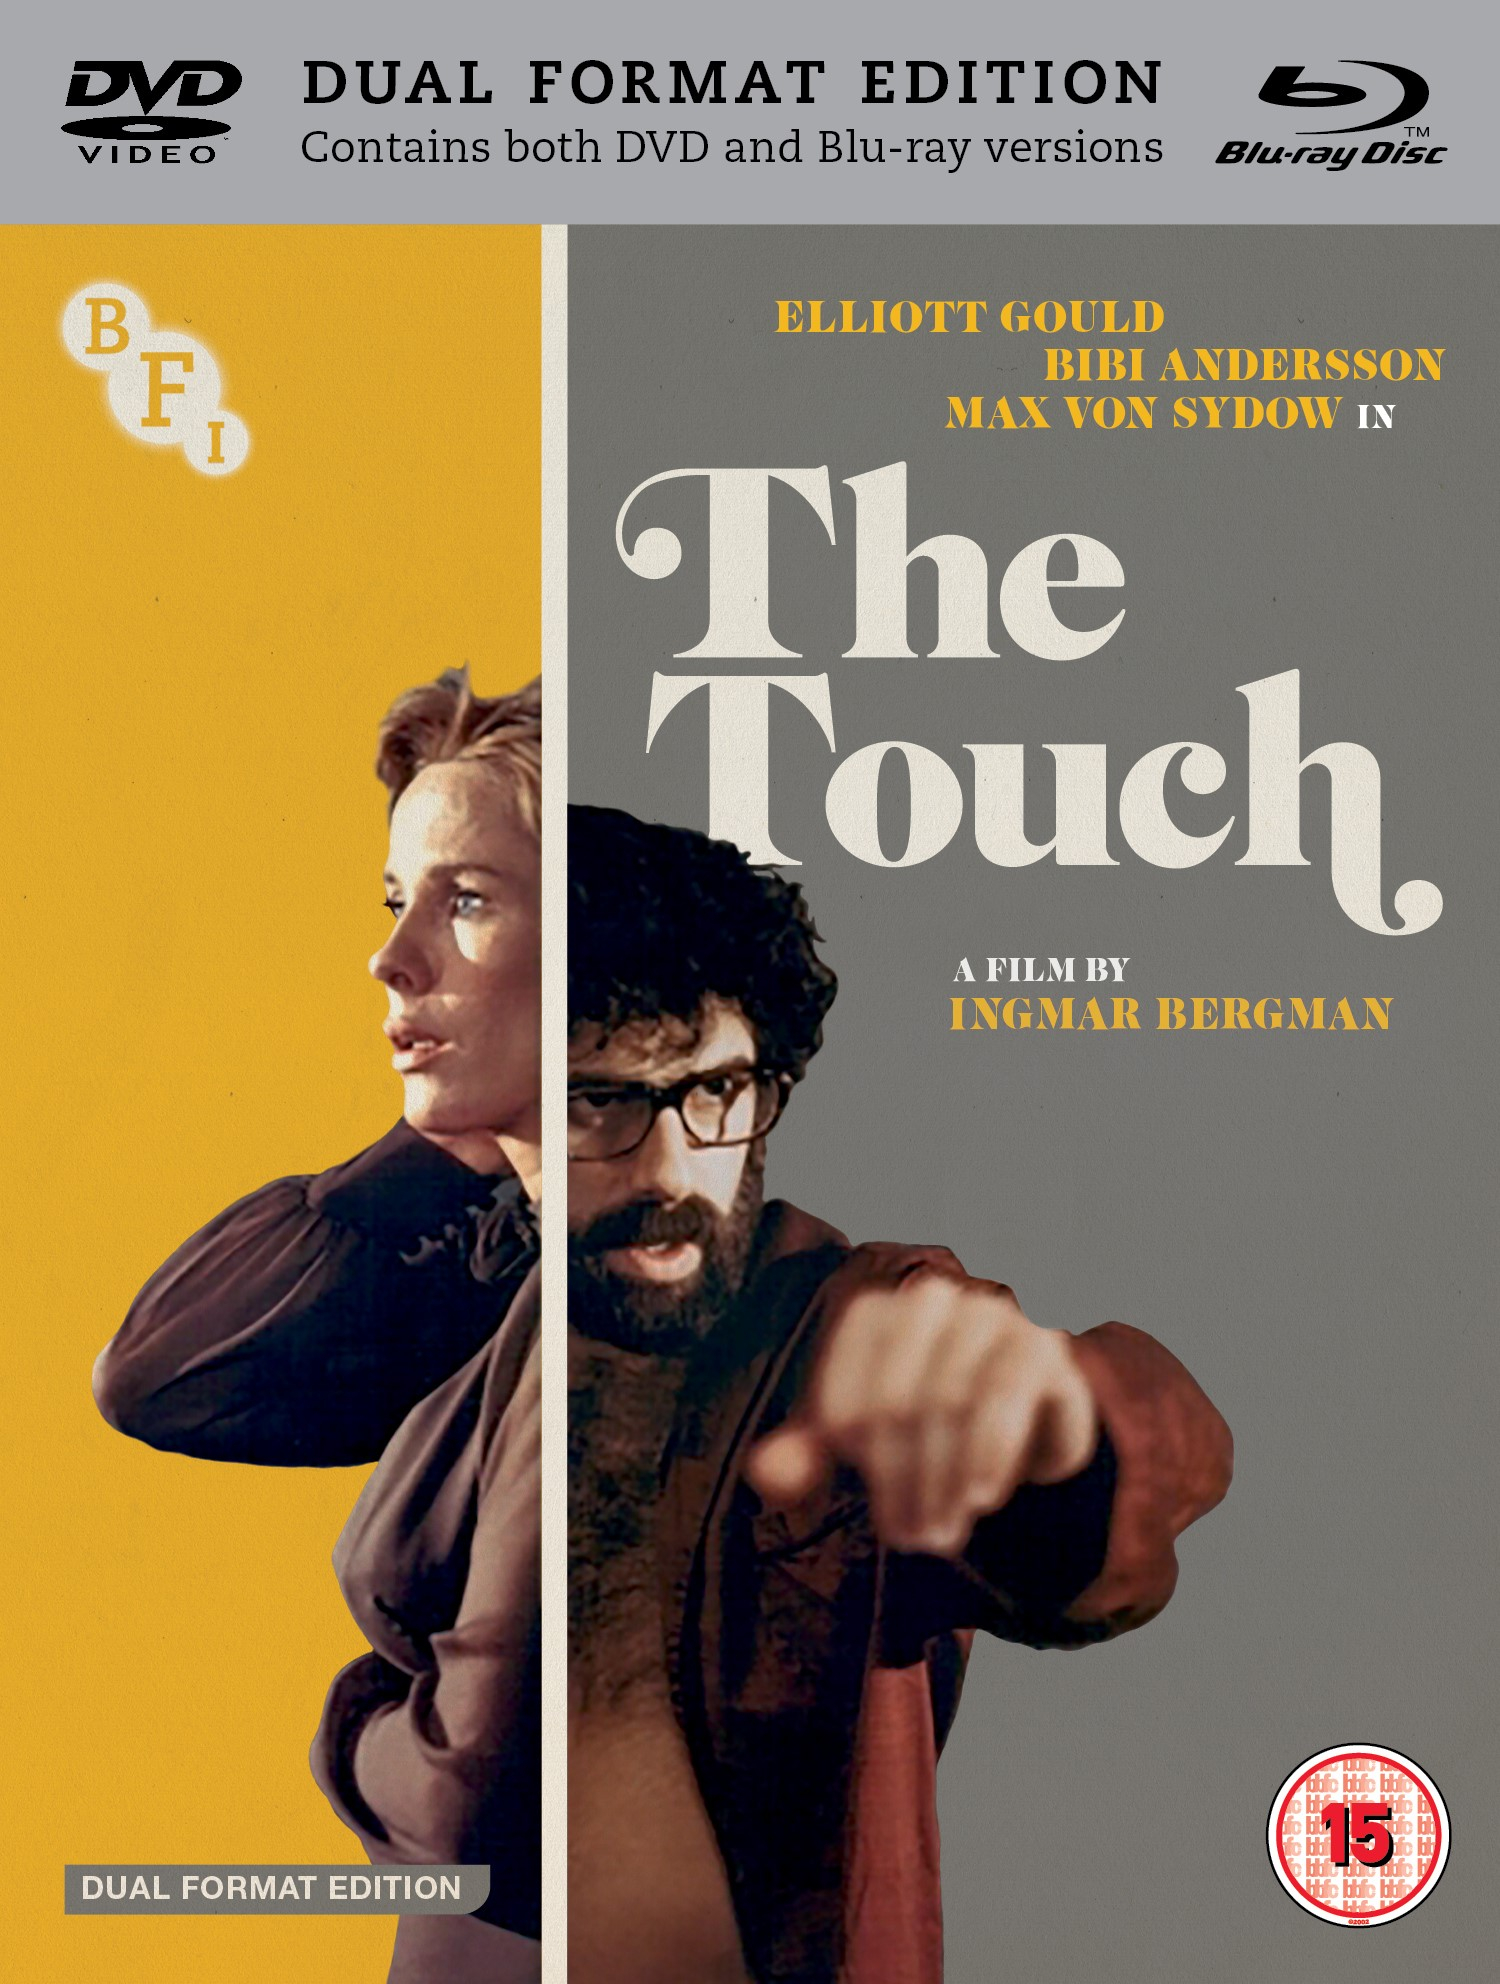 Buy The Touch (Dual Format Edition)